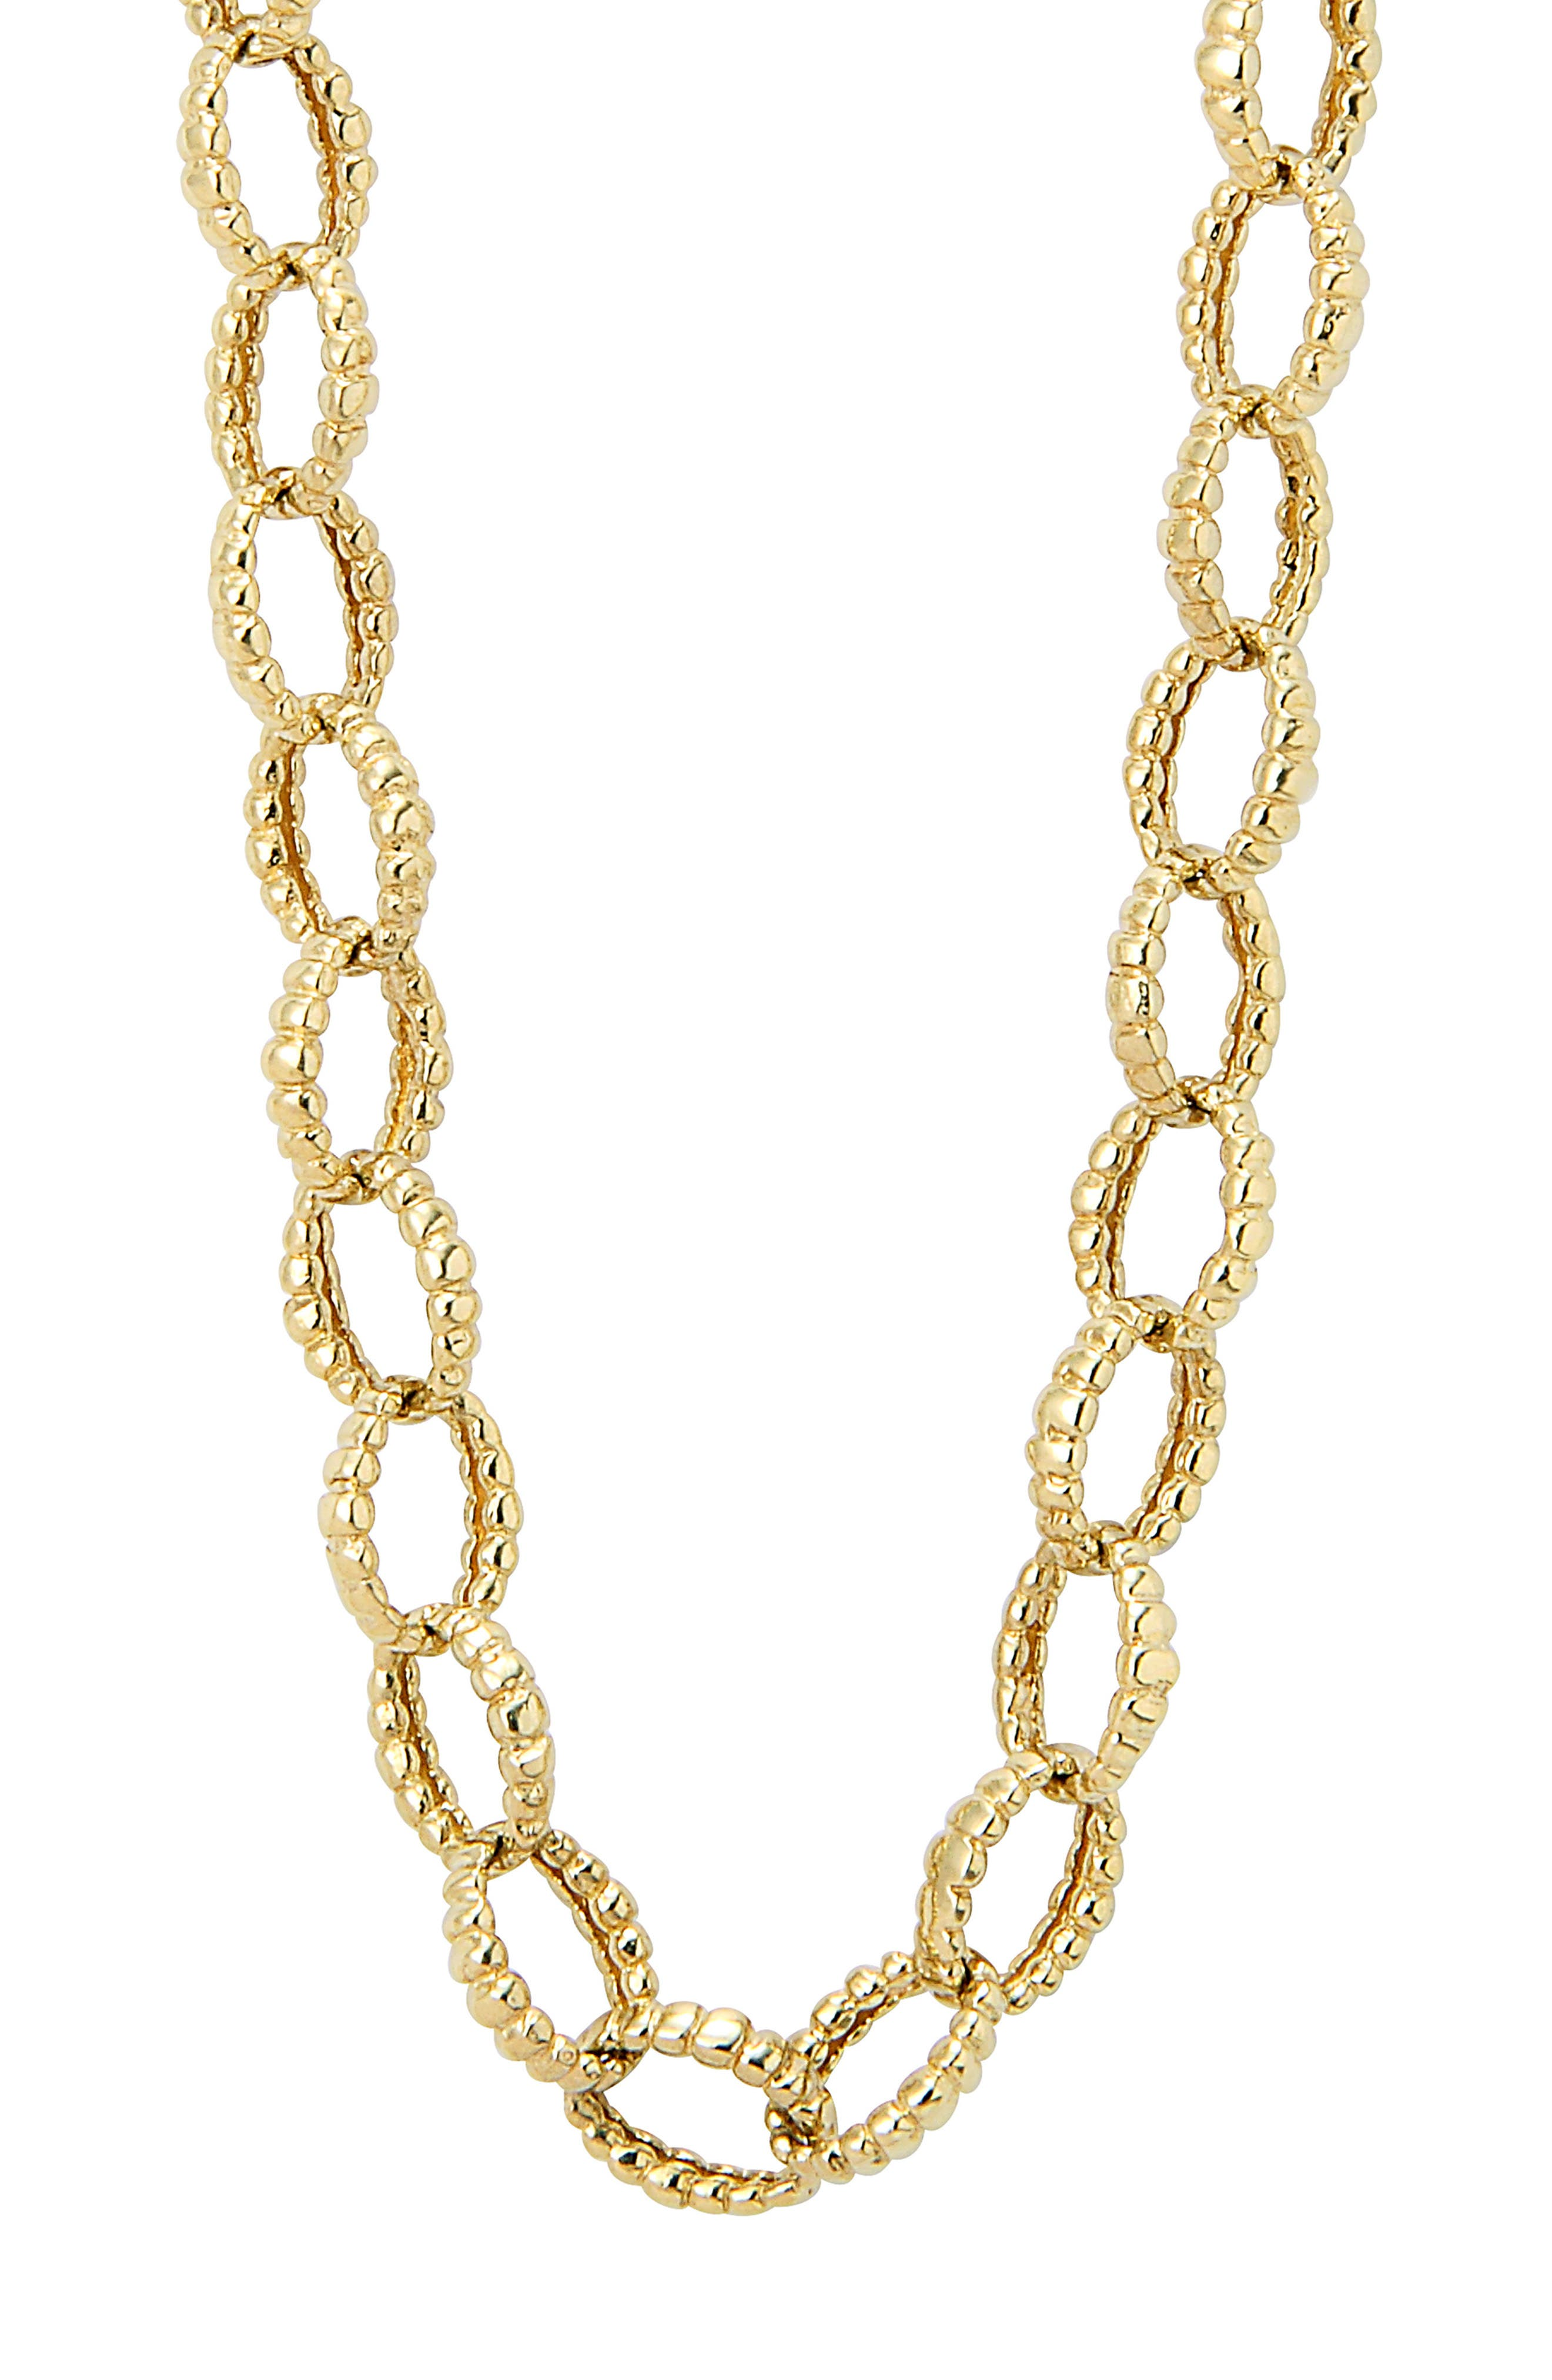 Caviar Gold Fluted Oval Link Necklace,                             Alternate thumbnail 3, color,                             Gold